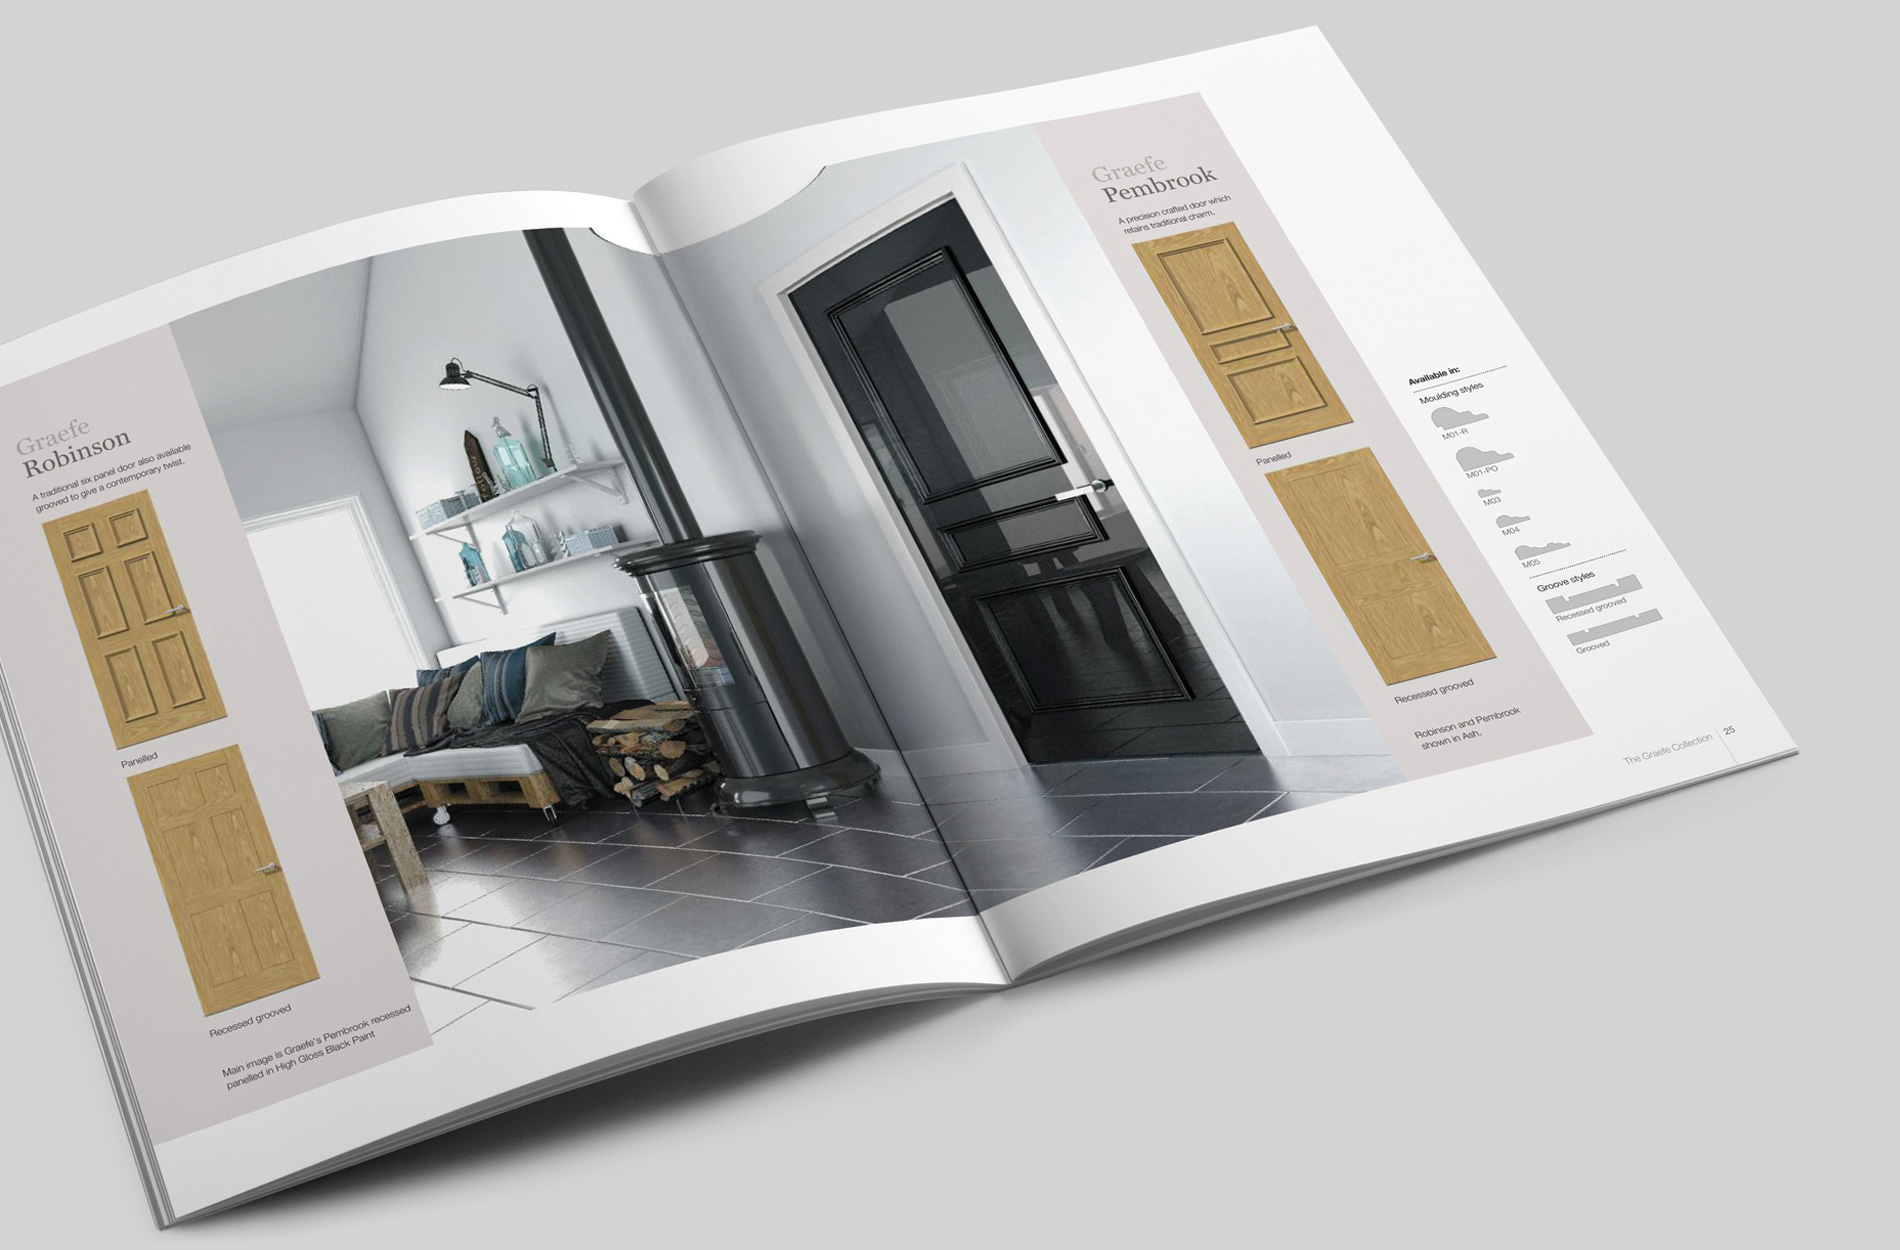 Product brochure design for Graefe veneer doors